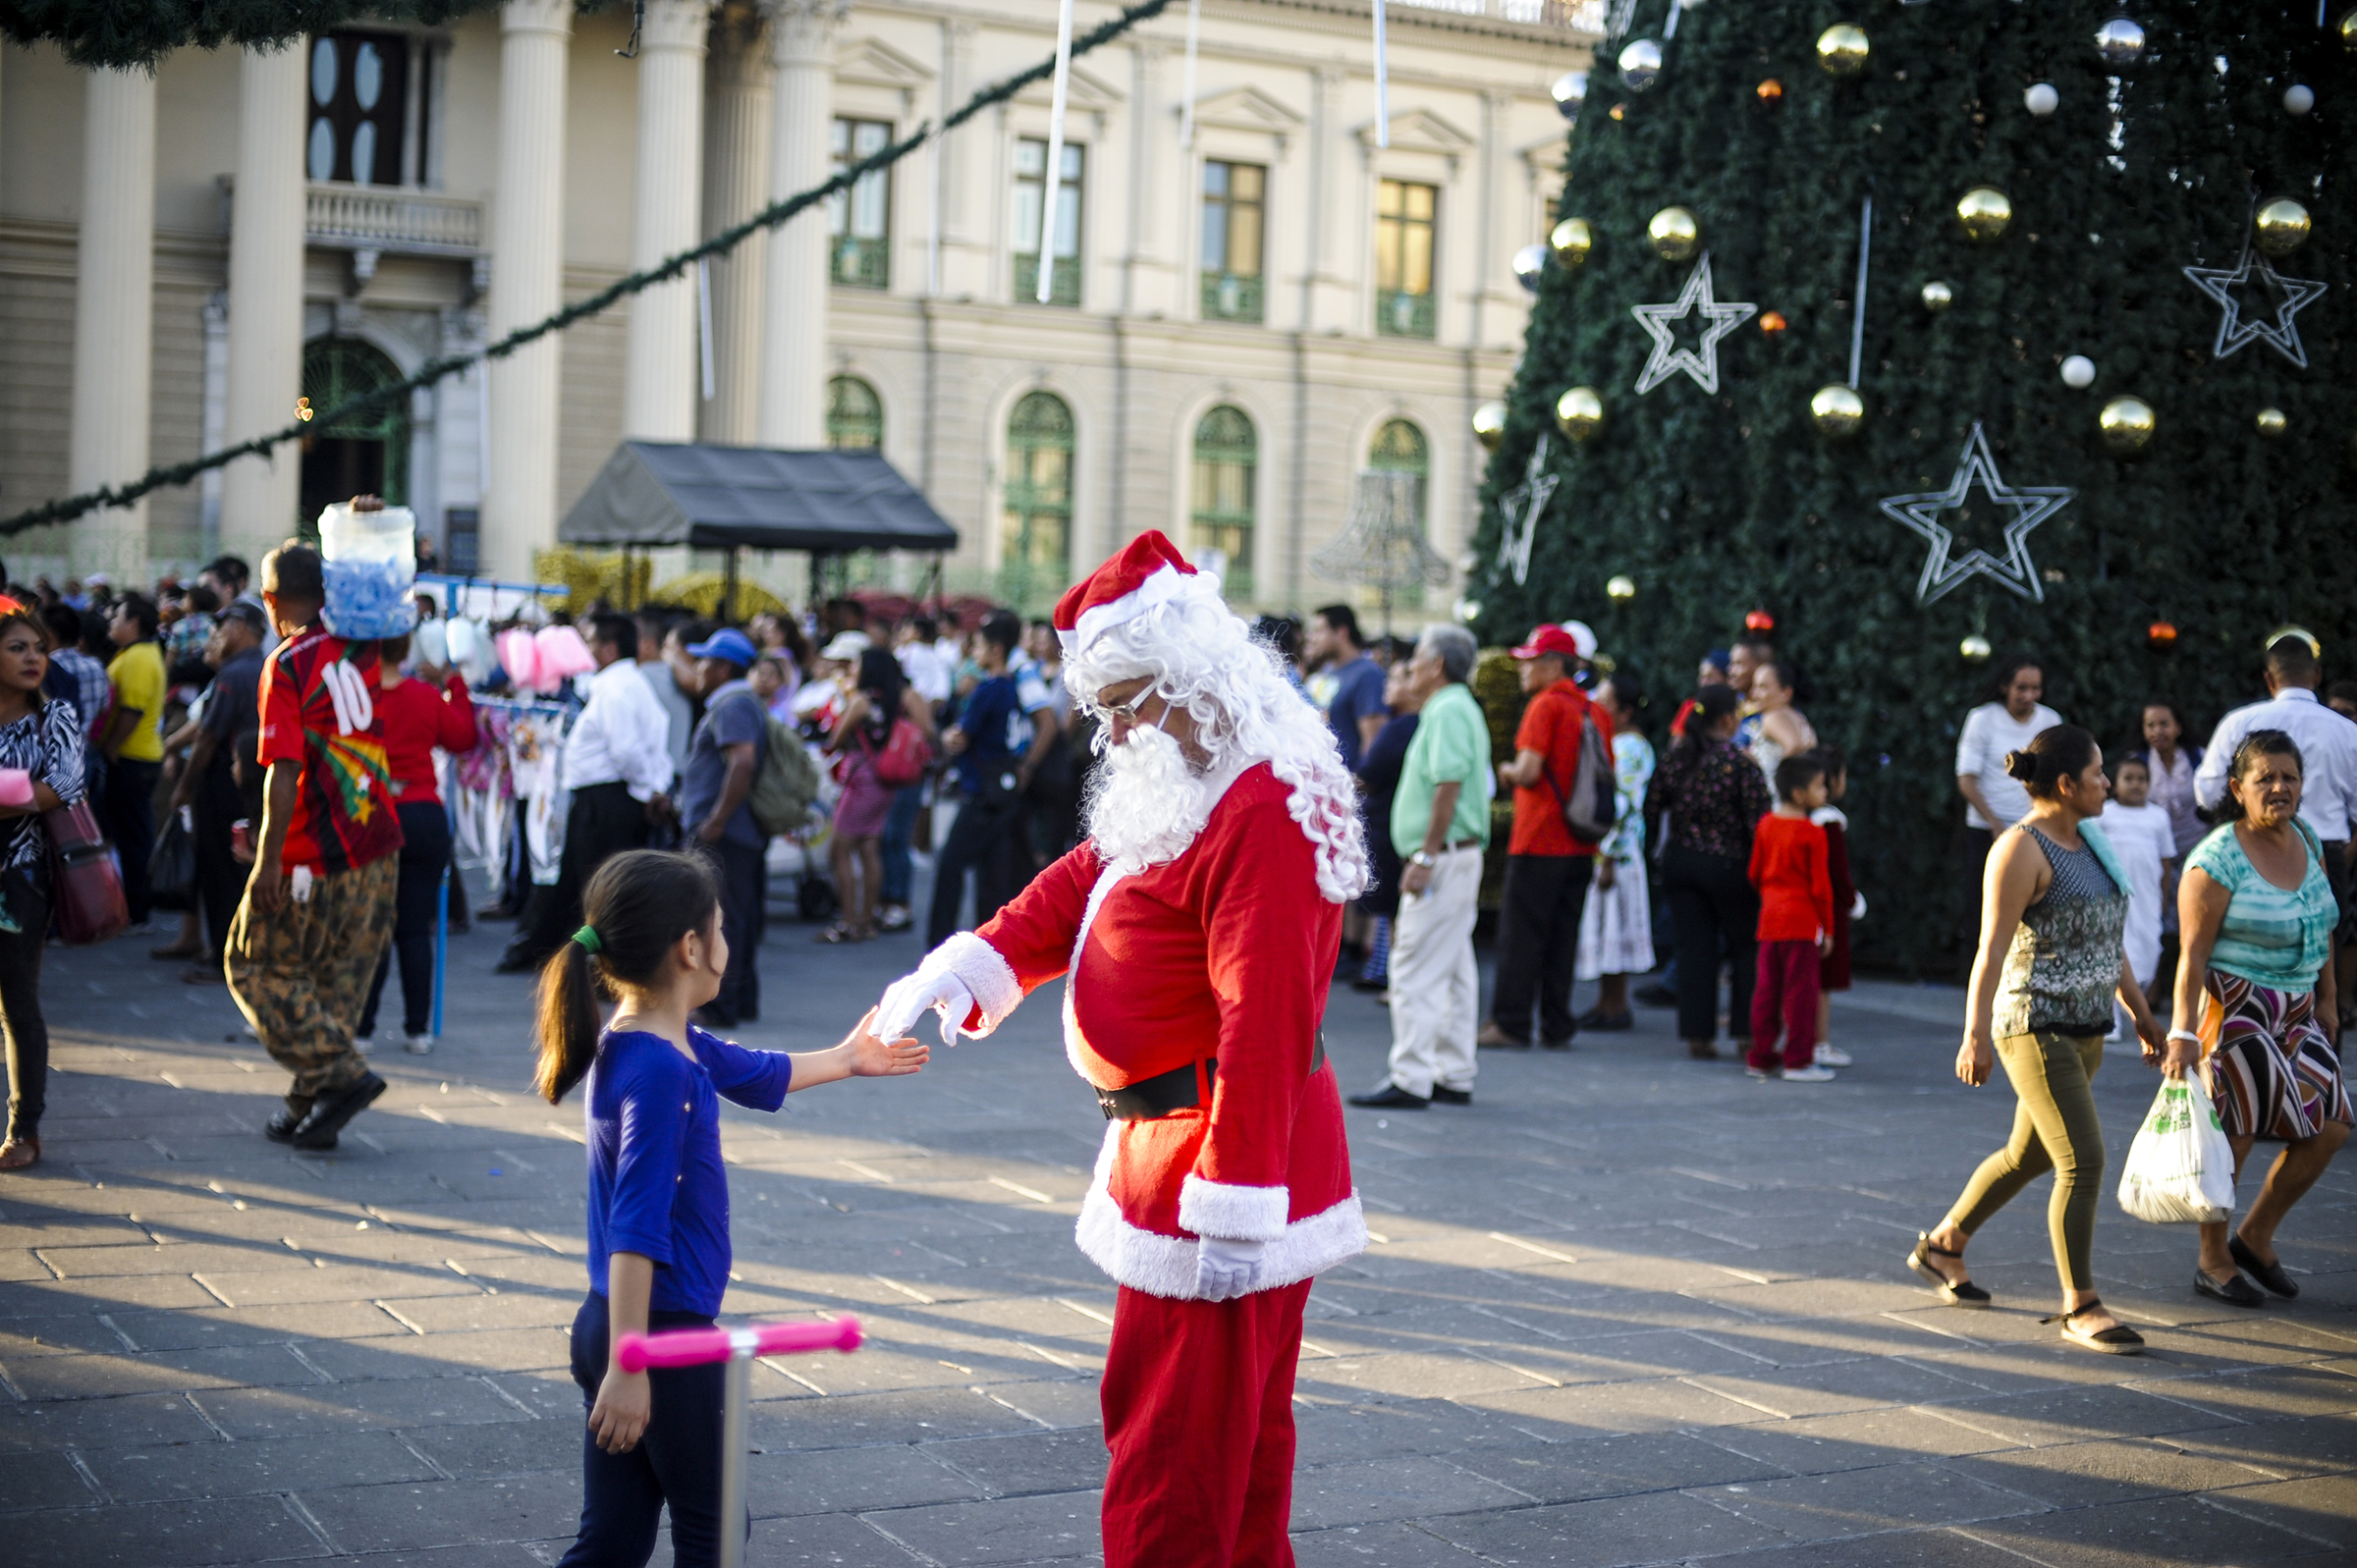 A man dressed up as a Santa Claus greets a girl during Christmas season on Dec. 15, 2019 in San Salvador, El Salvador.